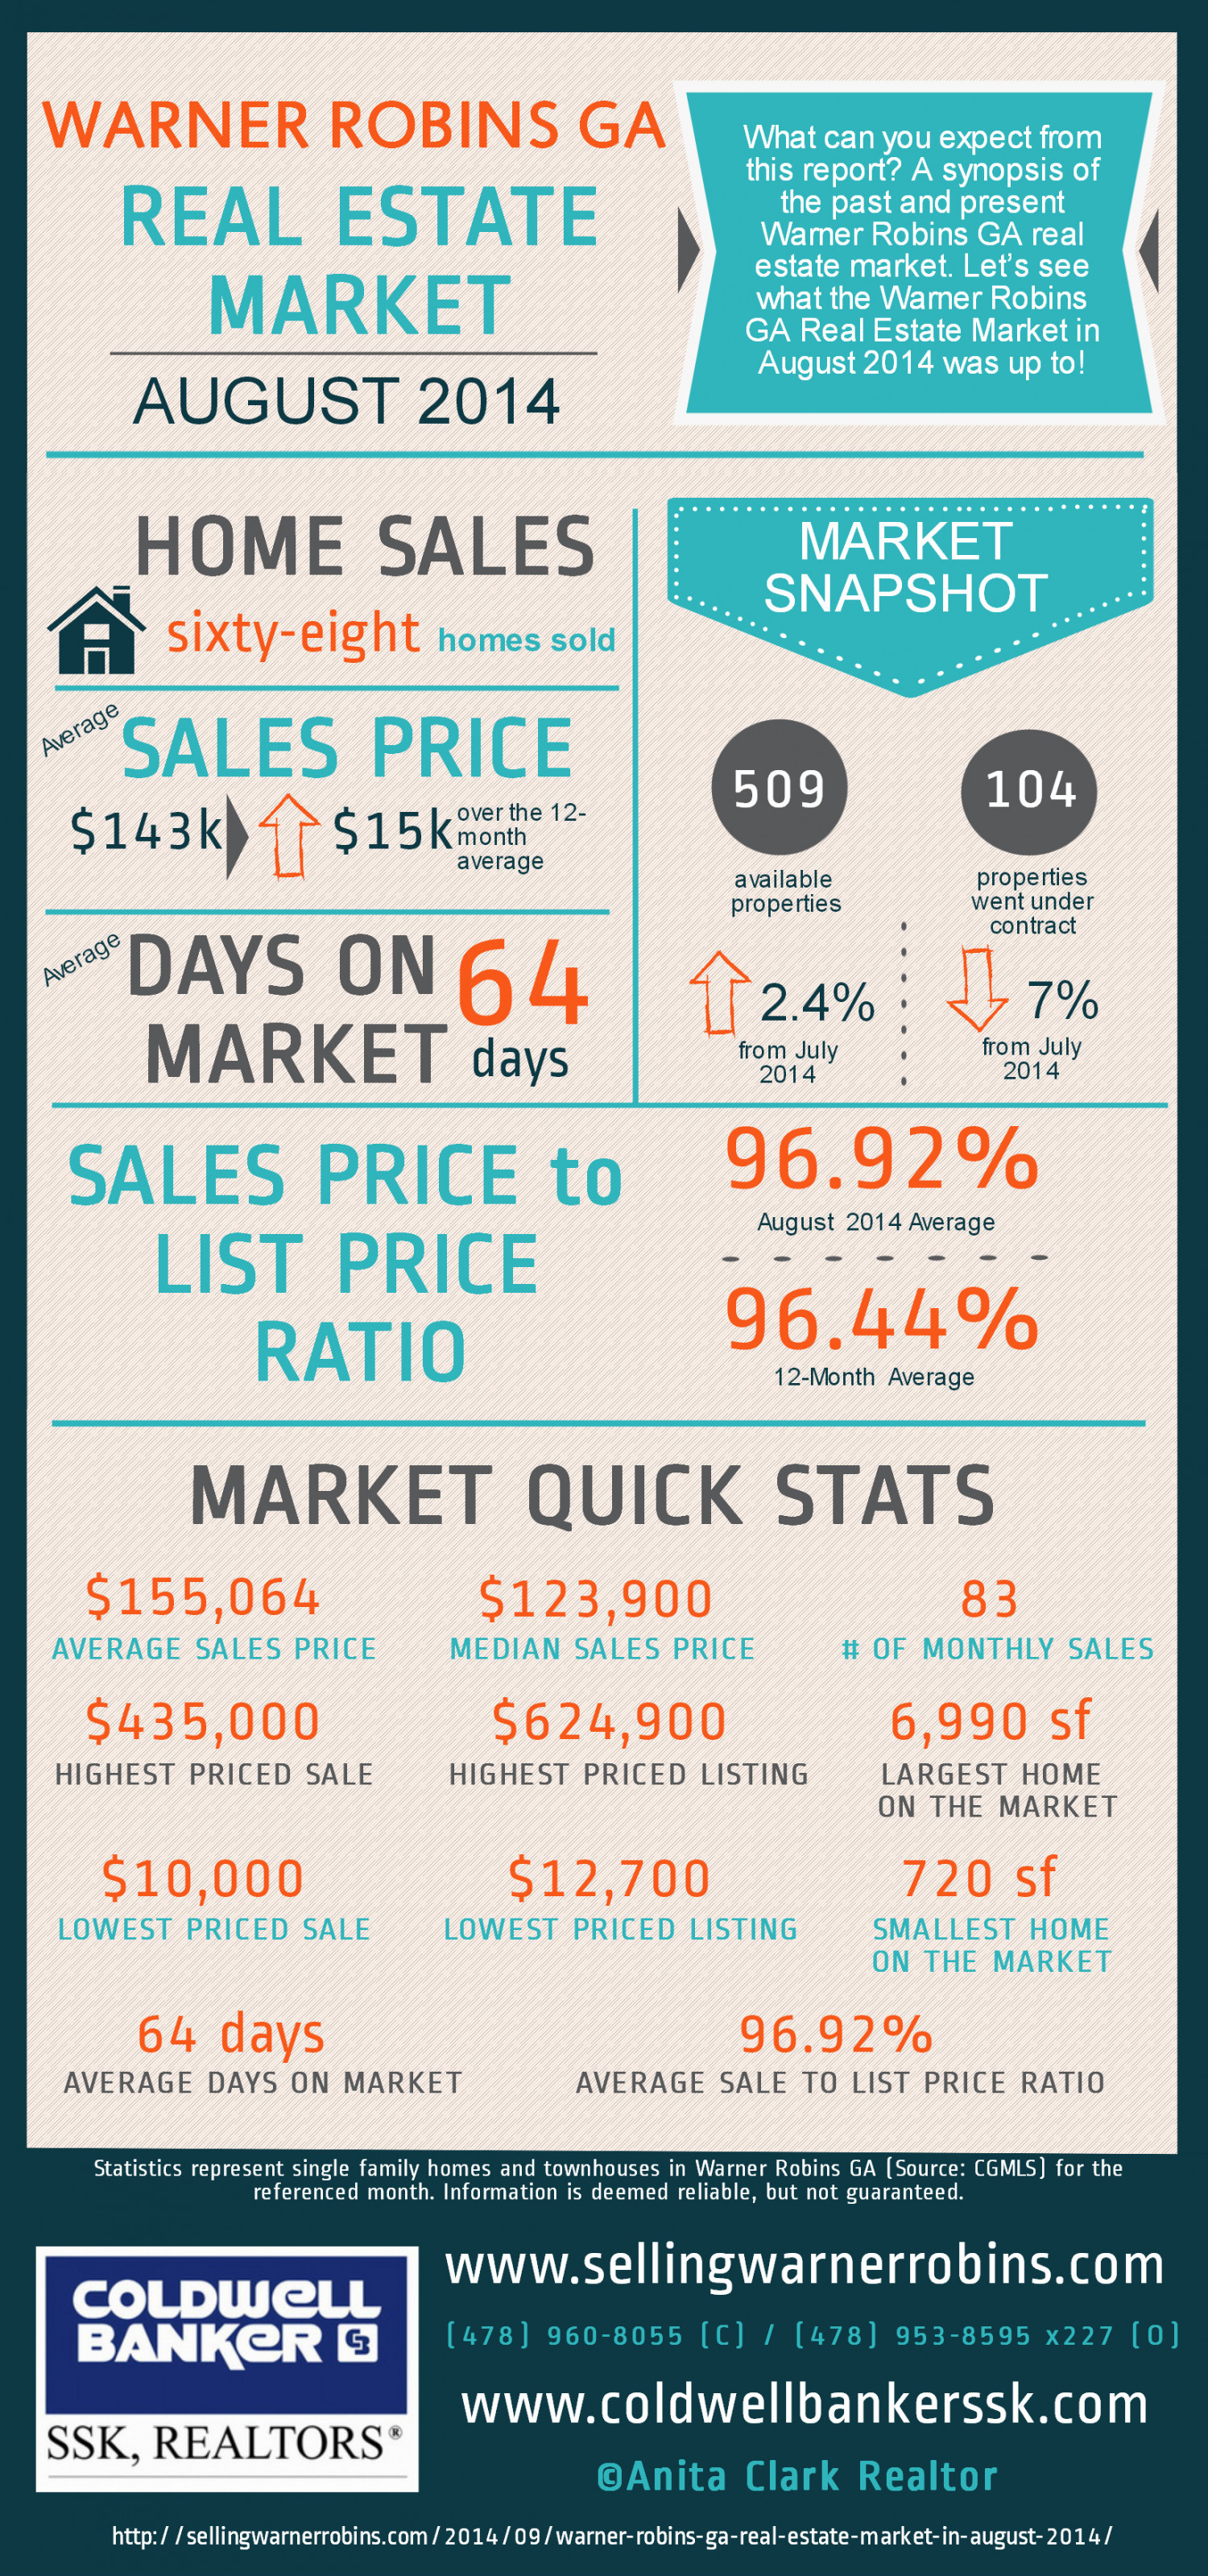 Warner Robins GA Real Estate Market in August 2014 Infographic